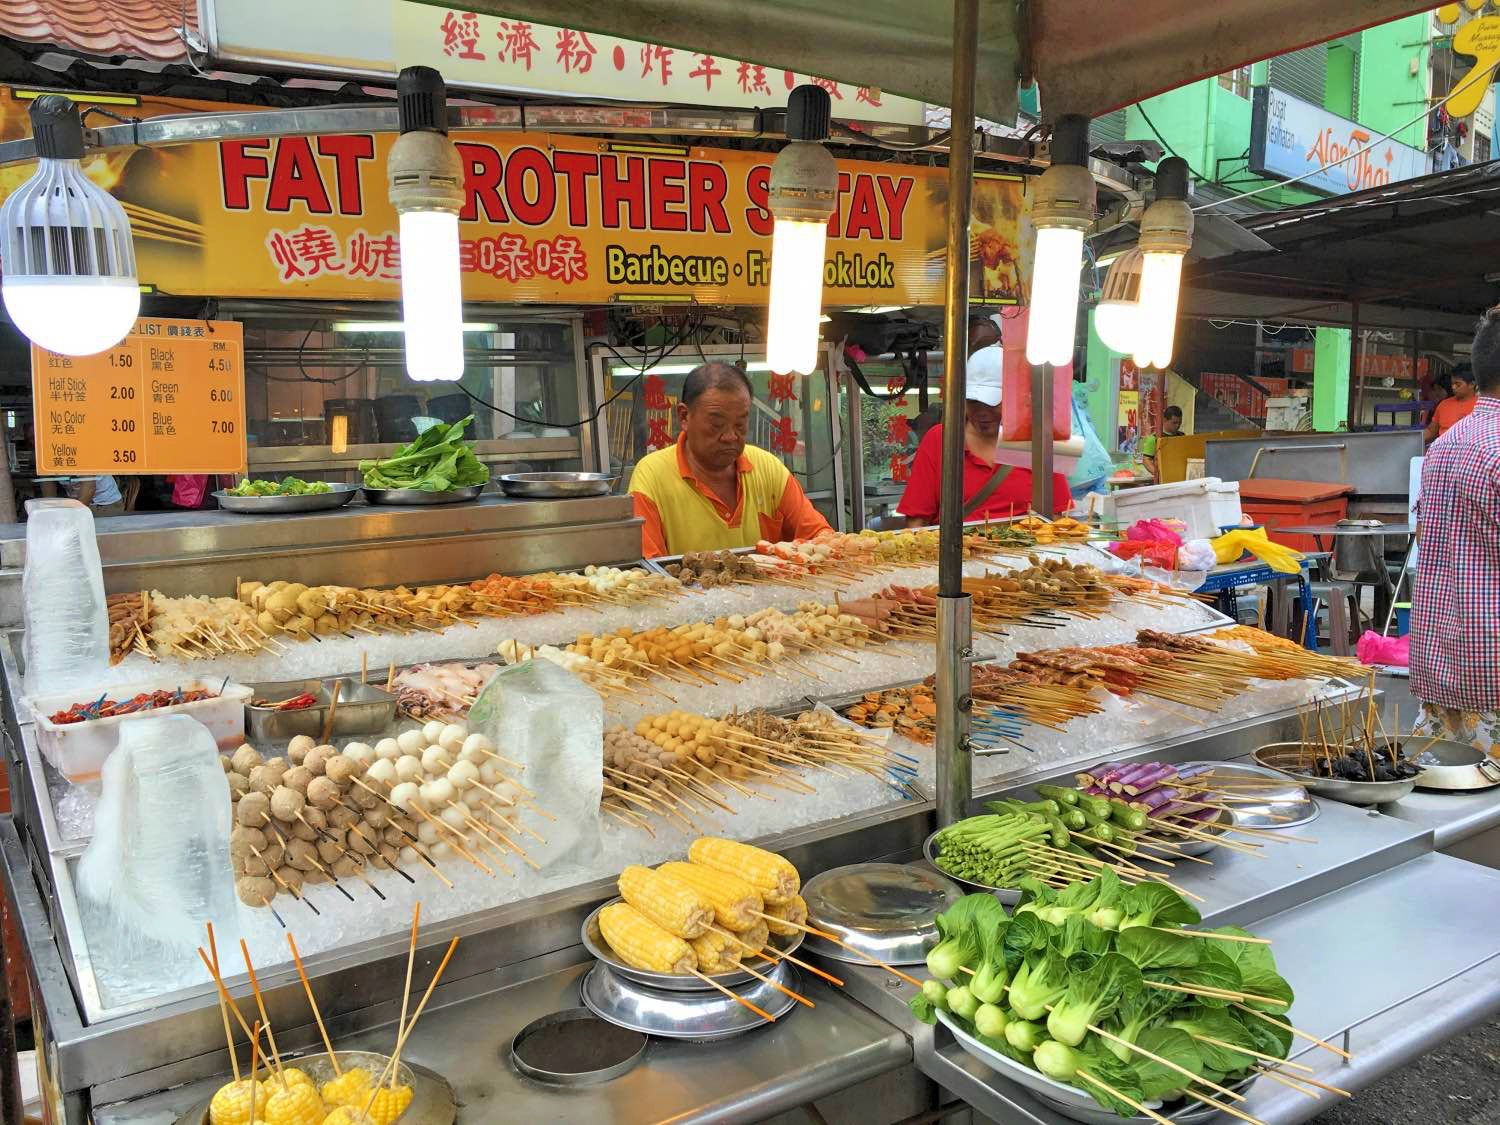 Jalan Alor, Kuala Lumpur. This is one of the best things to do in Kuala Lumpur, Malaysa in 2 days. Read the article for a complete 2-day itinerary for KL. #kl #malaysia. #klitinerary #2daykualalumpur #kualalumpurguide #kualalumpurtraveling #kualalumpuritinerary #klitinerary